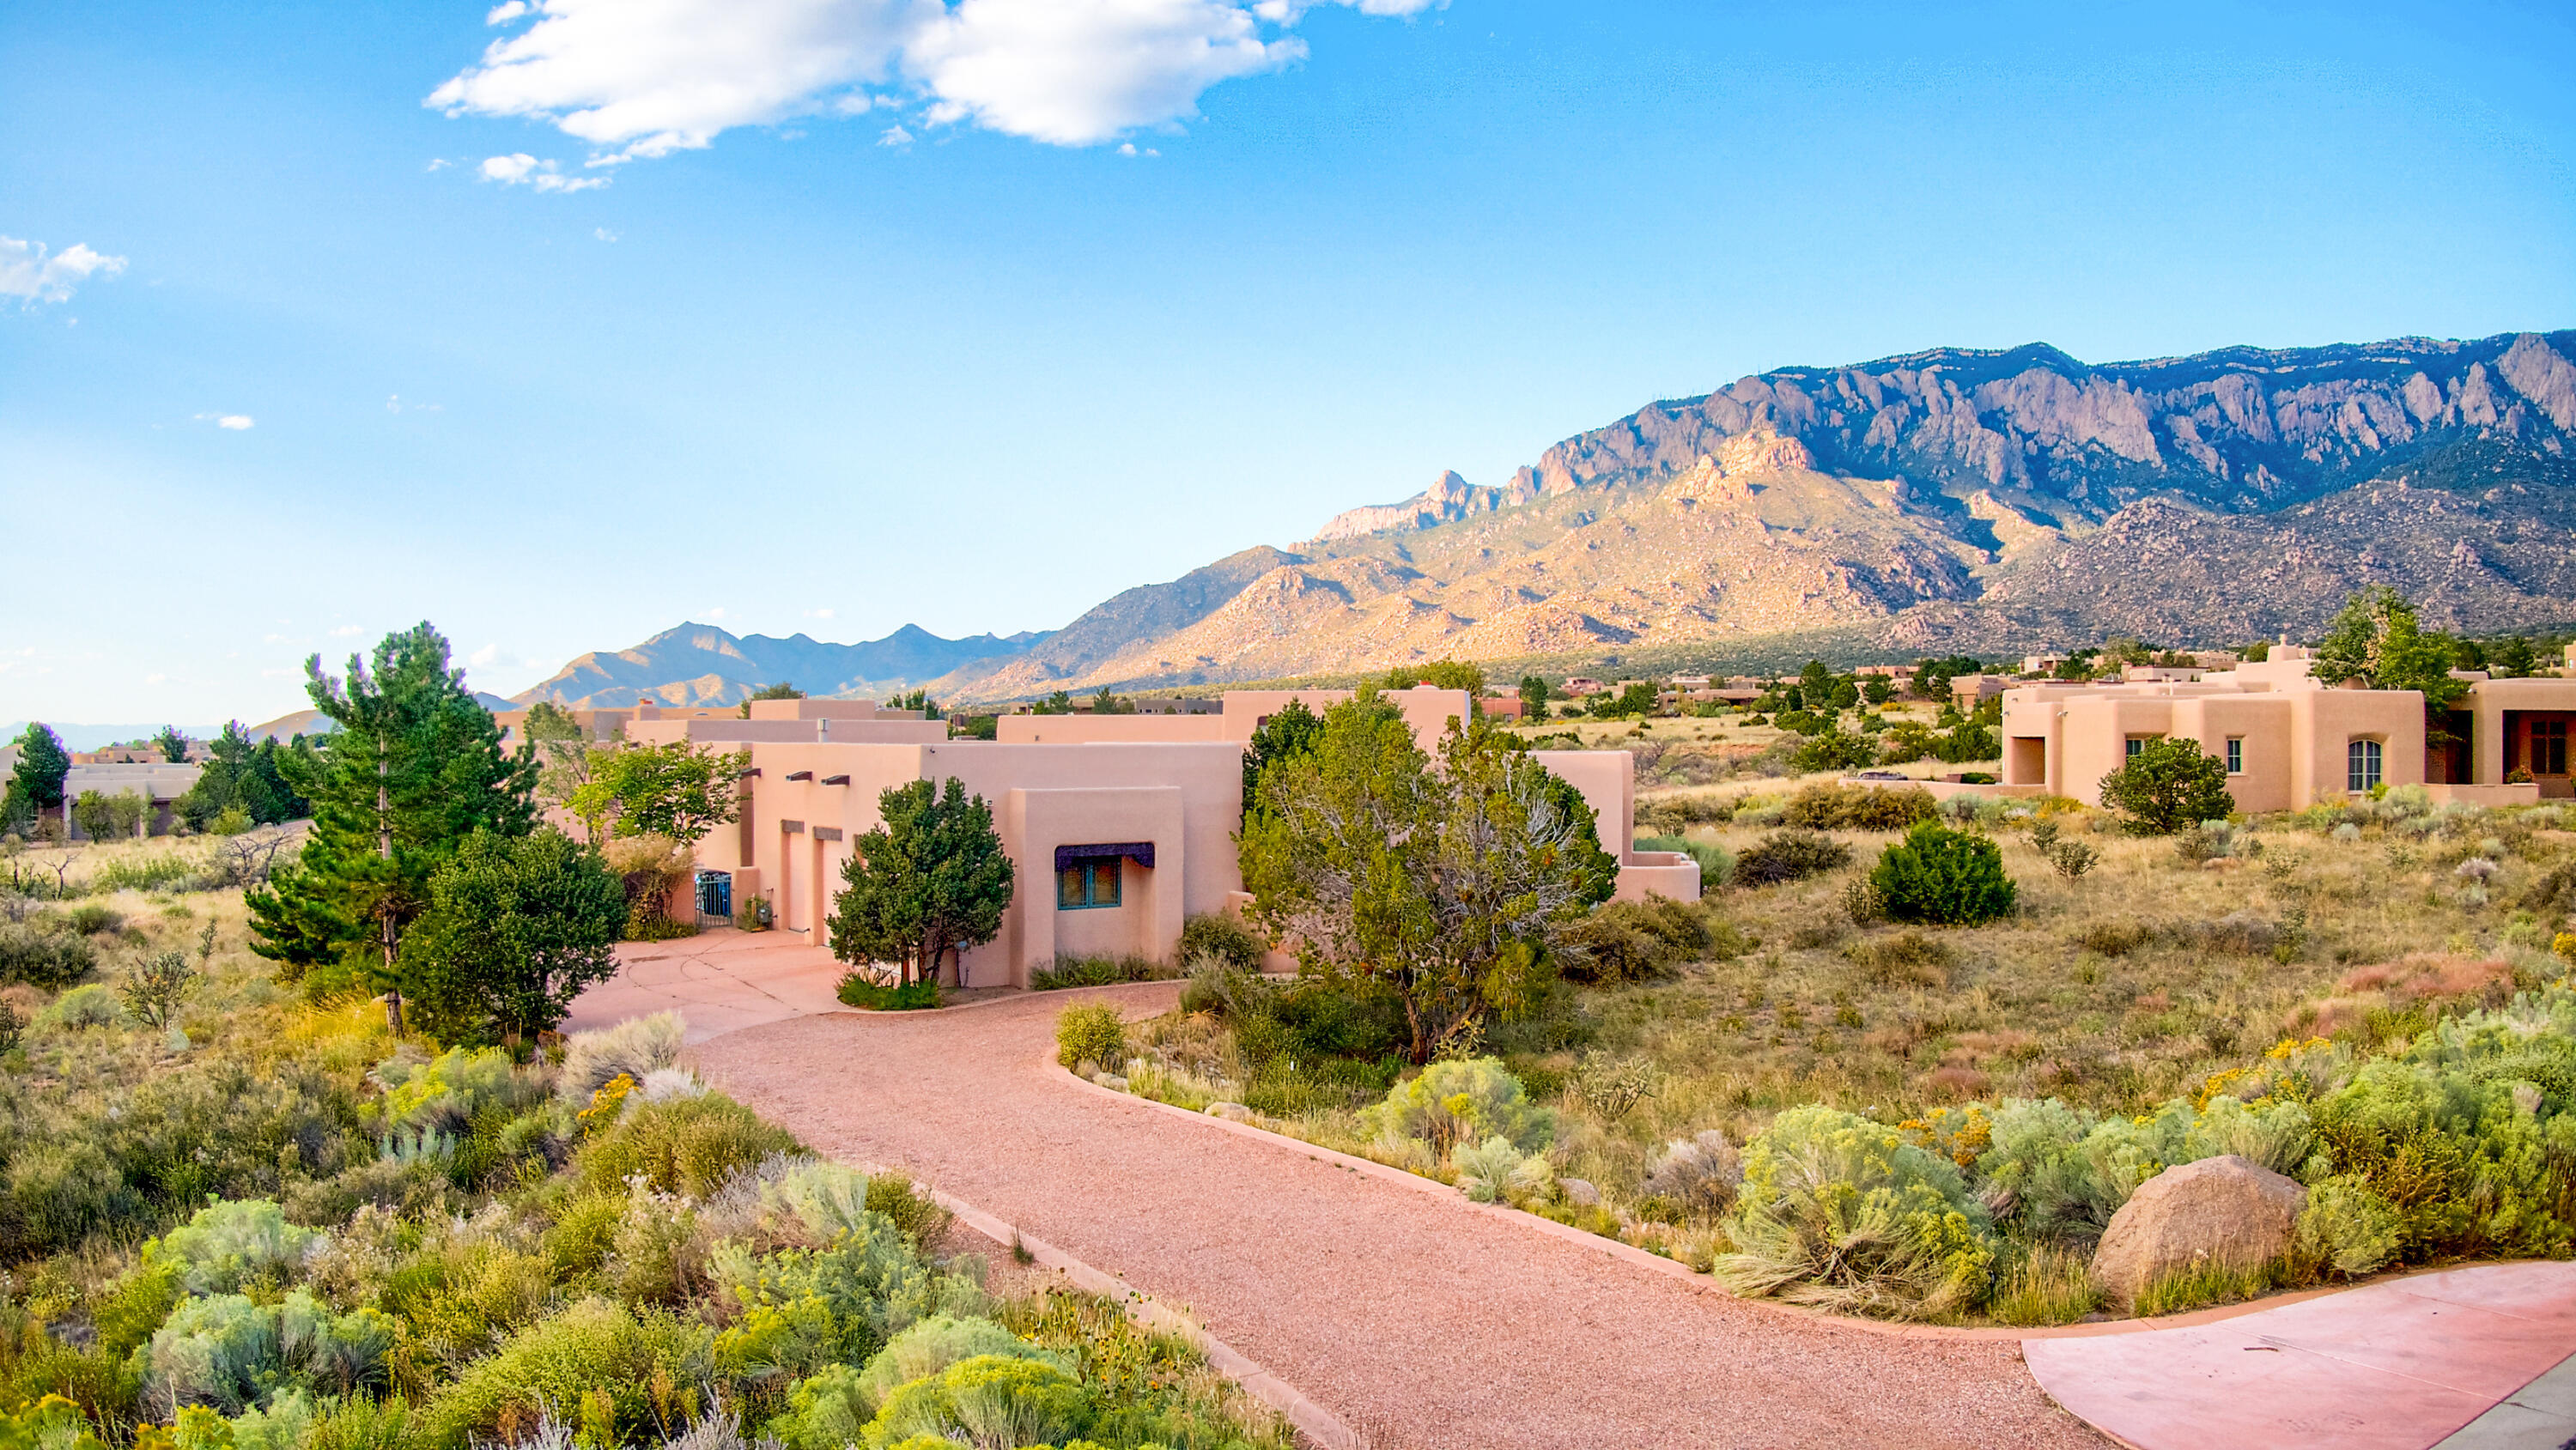 Live right at the edge of the Sandias! This custom built home is perfectly oriented to take full advantage of mountain views at all times of the day.You'll love your private owner's suite oasis, complete with its own sitting area around a fireplace, a spacious owner's suite bathroom with a gorgeous soaking tub, separate shower, and spacious walk-in closet.There are so many wonderful ways to use this space - a fully finished basement den, complete with its own wet bar, living room and half bath is perfect for entertaining or creating a possible large bedroom suite. The kitchen's orientation is perfect for indoor/outdoor living, with gorgeous views and easy access to your own private pool.You'll be hard pressed to find a home of this stature within this price range in High Desert